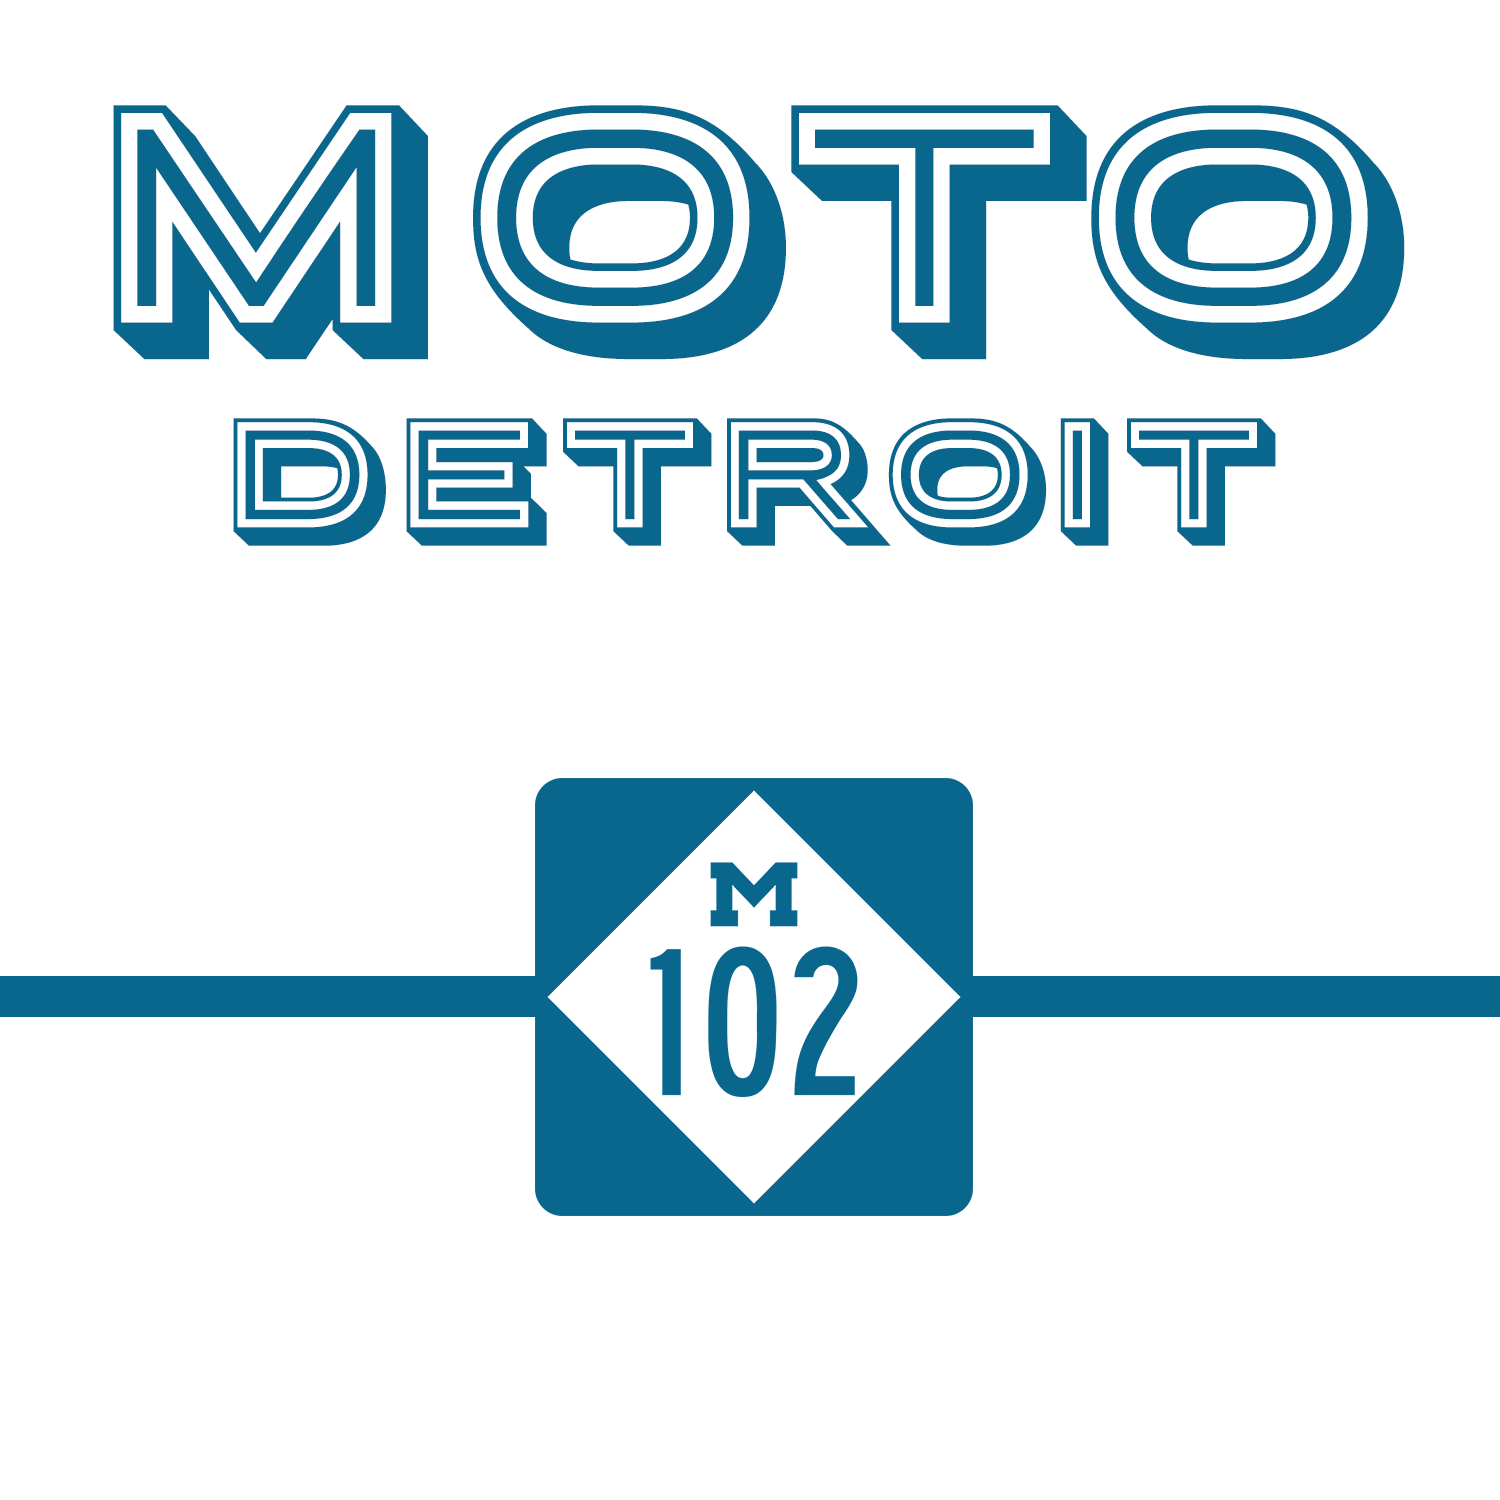 moto detroit chapter.png